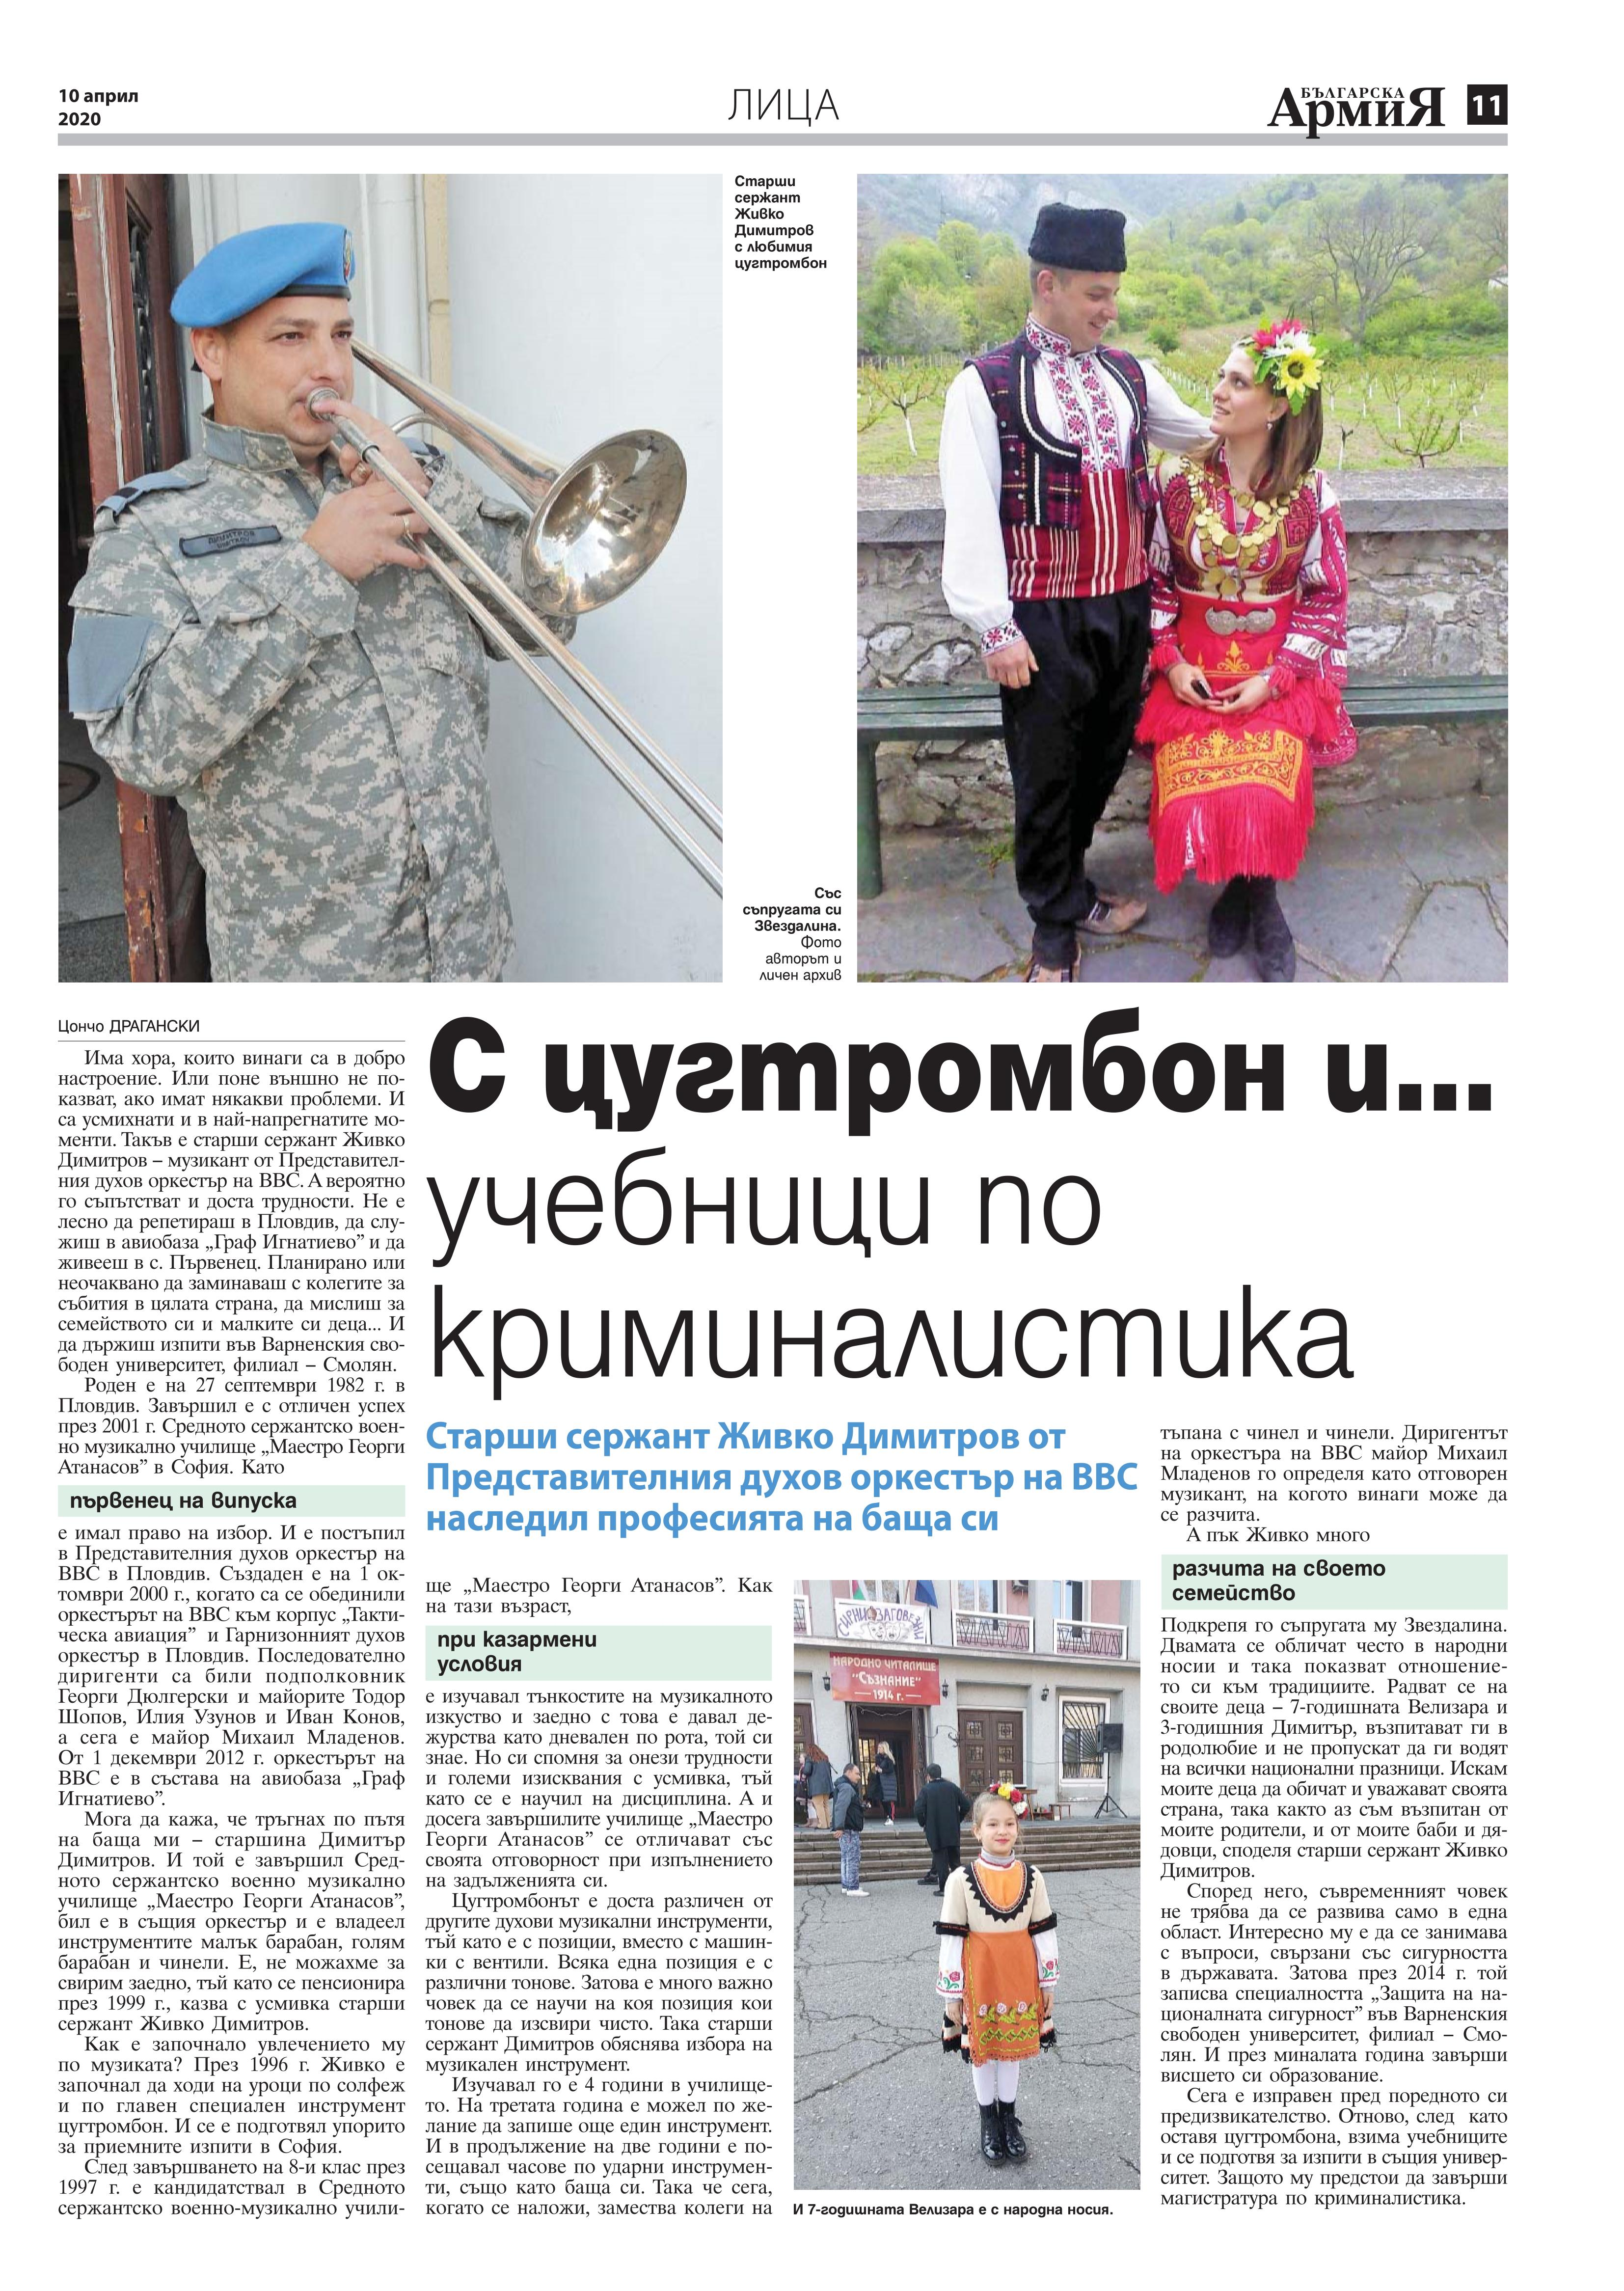 https://armymedia.bg/wp-content/uploads/2015/06/11.page1_-133.jpg